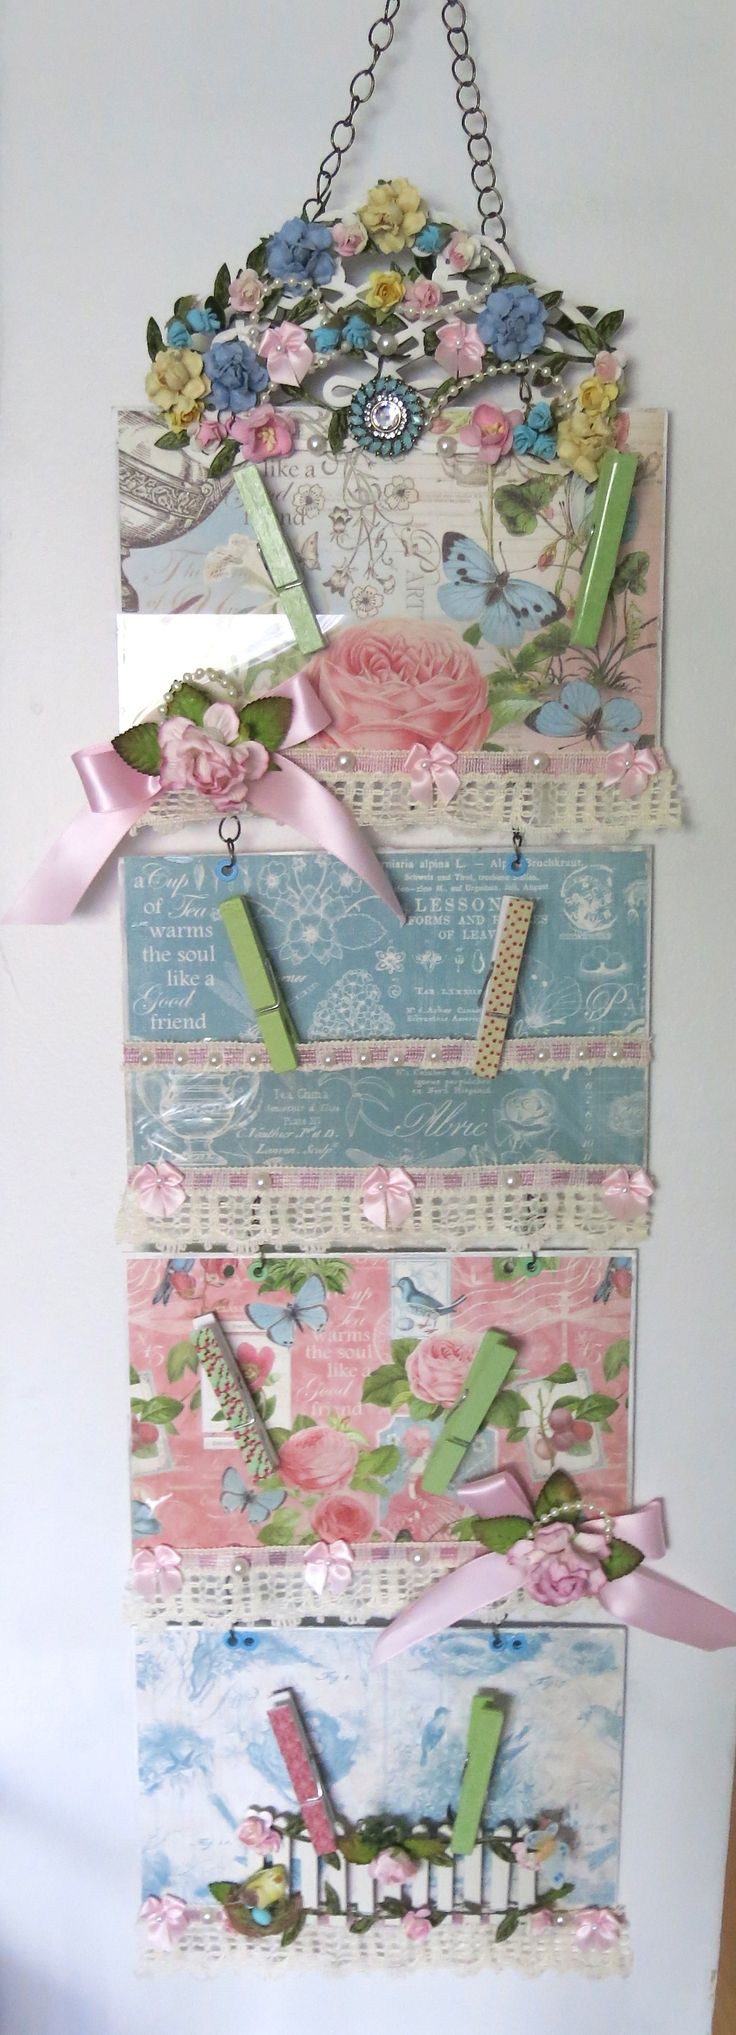 Find This Pin And More On Craft Room/office Wall Storage Ideas By Corwiz.